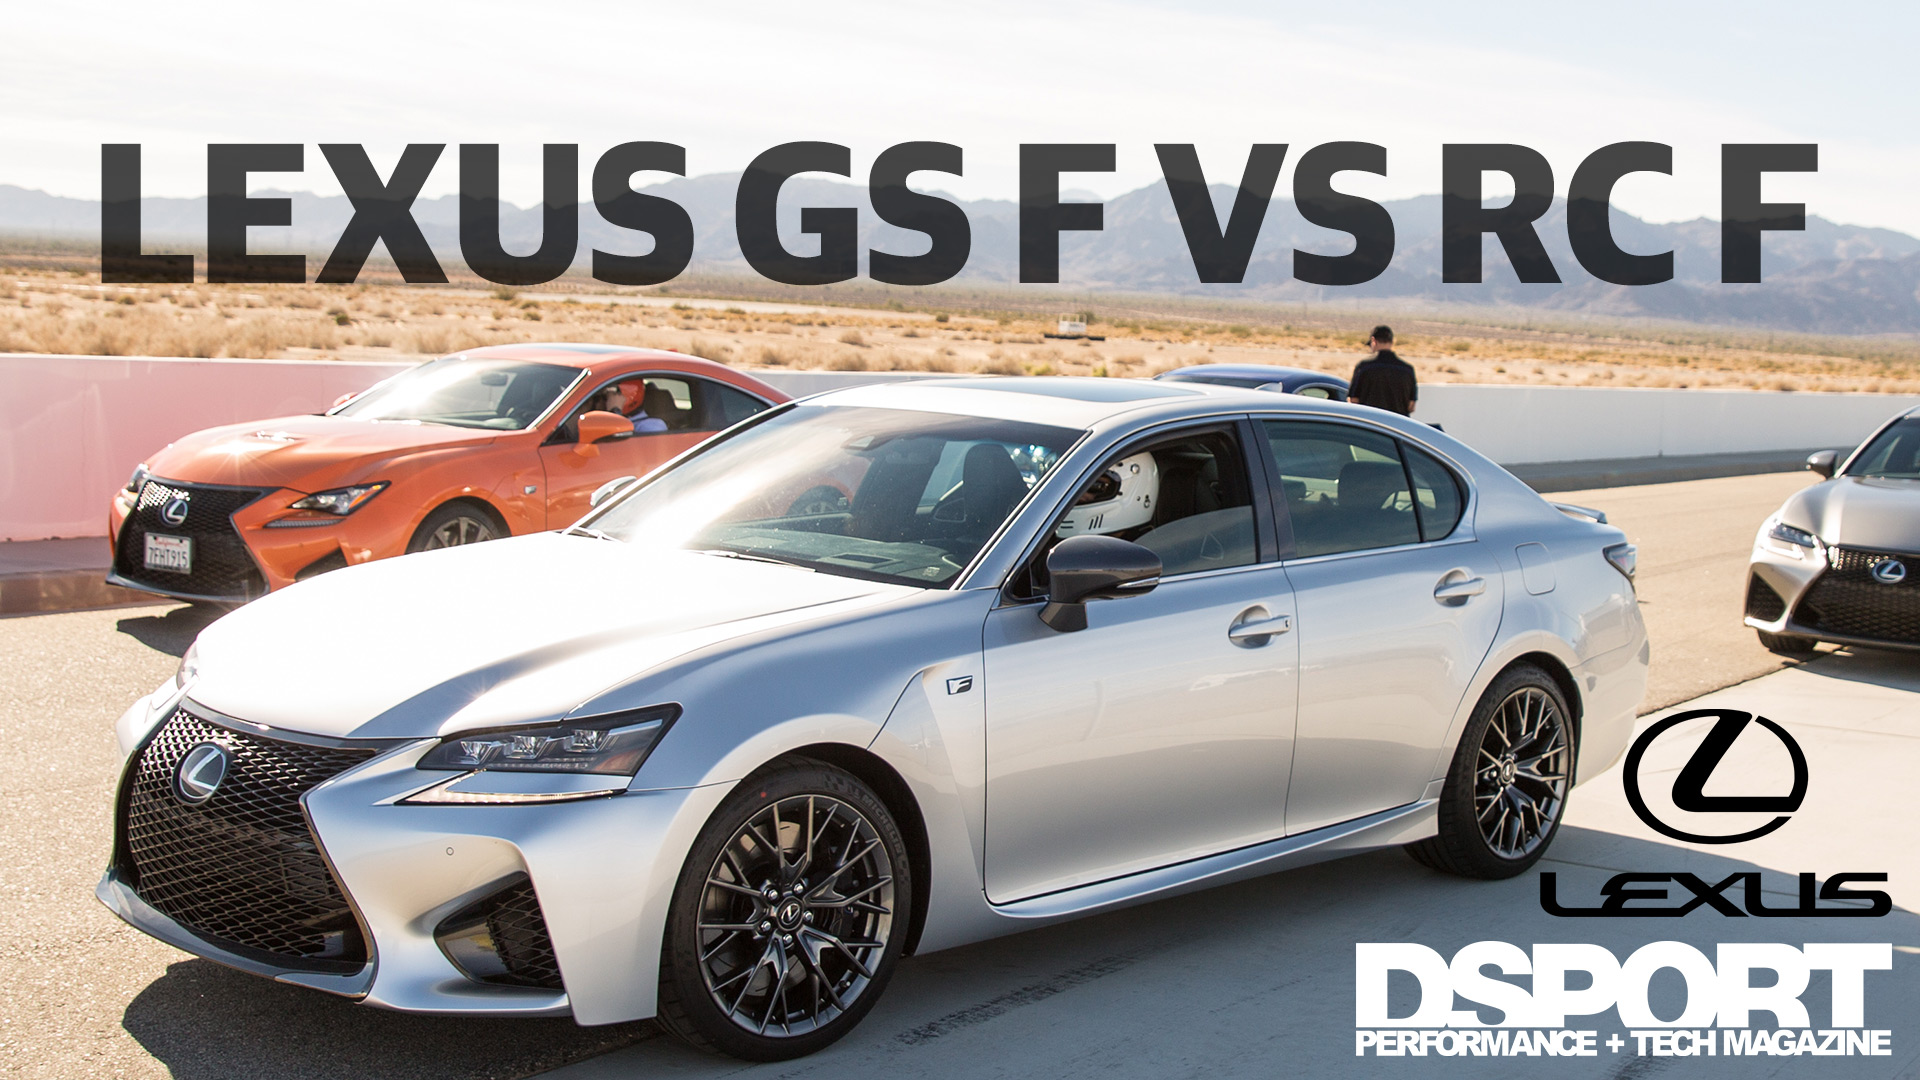 Lexus GS F vs RC F